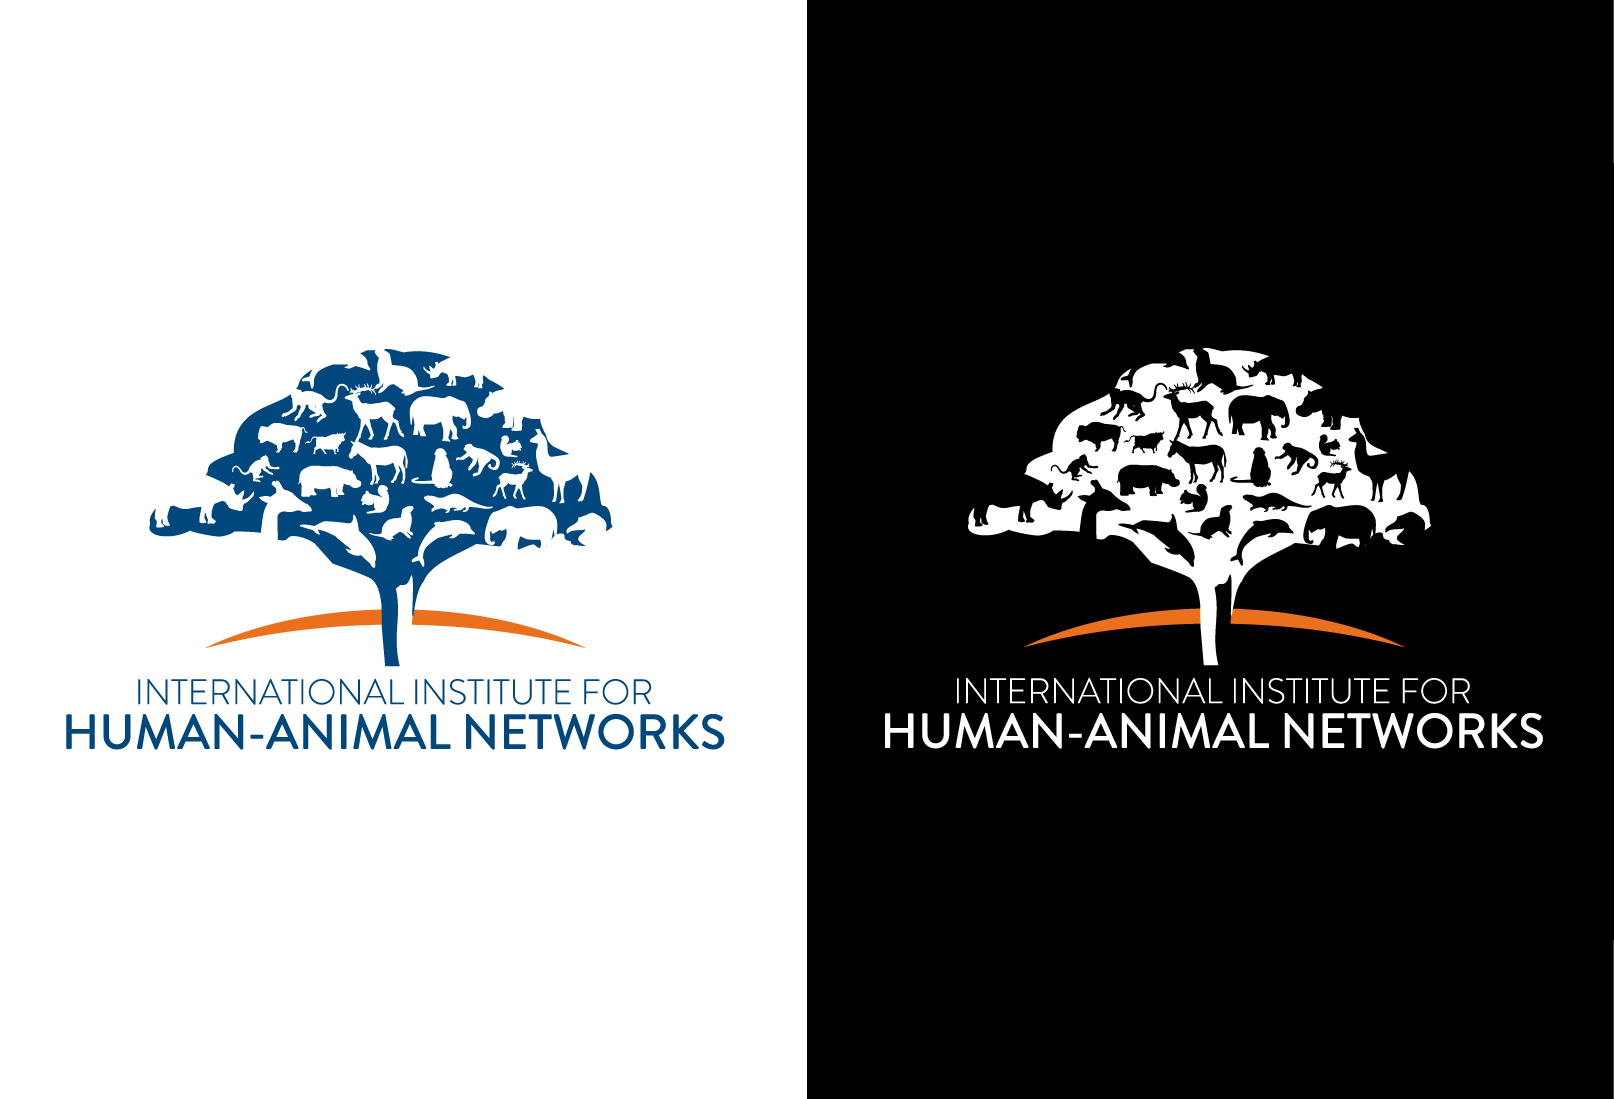 New logo wanted for International Institute for Human-Animal Networks